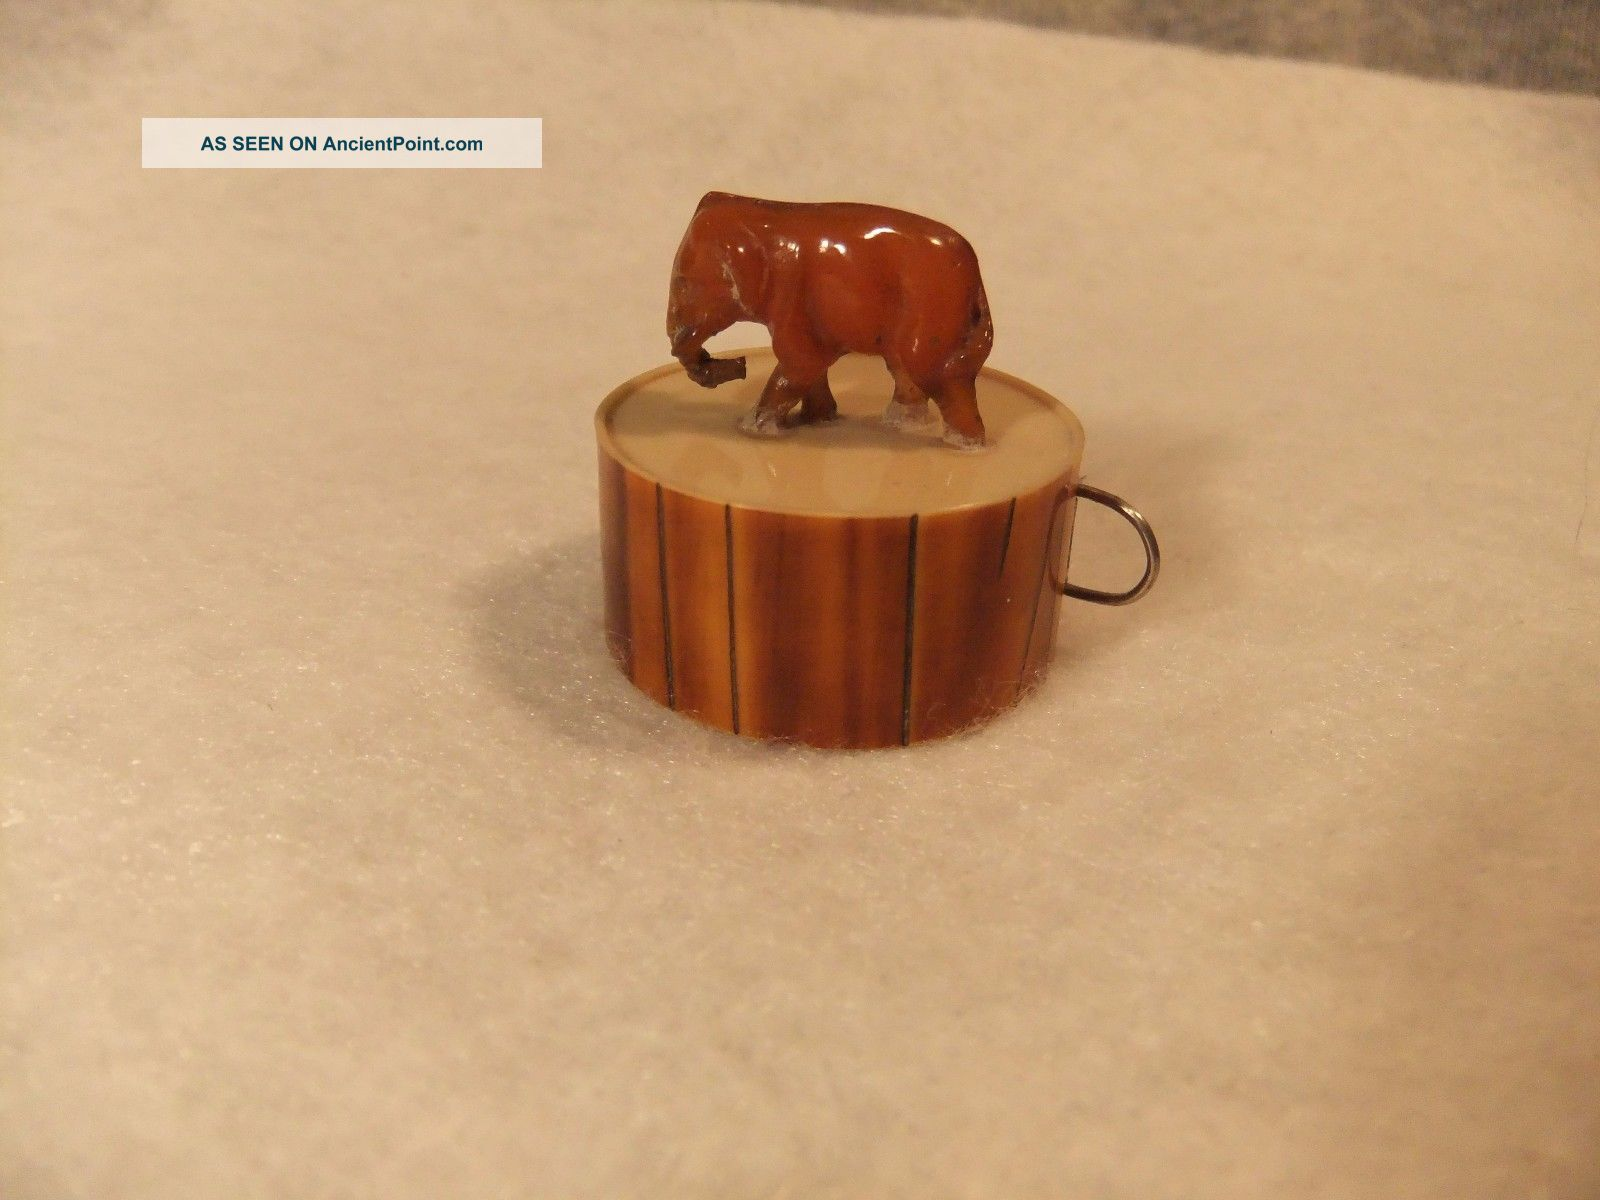 Vintage Celluloid Sewing Tape Measure Elephant Figure Made In Germany Tools, Scissors & Measures photo